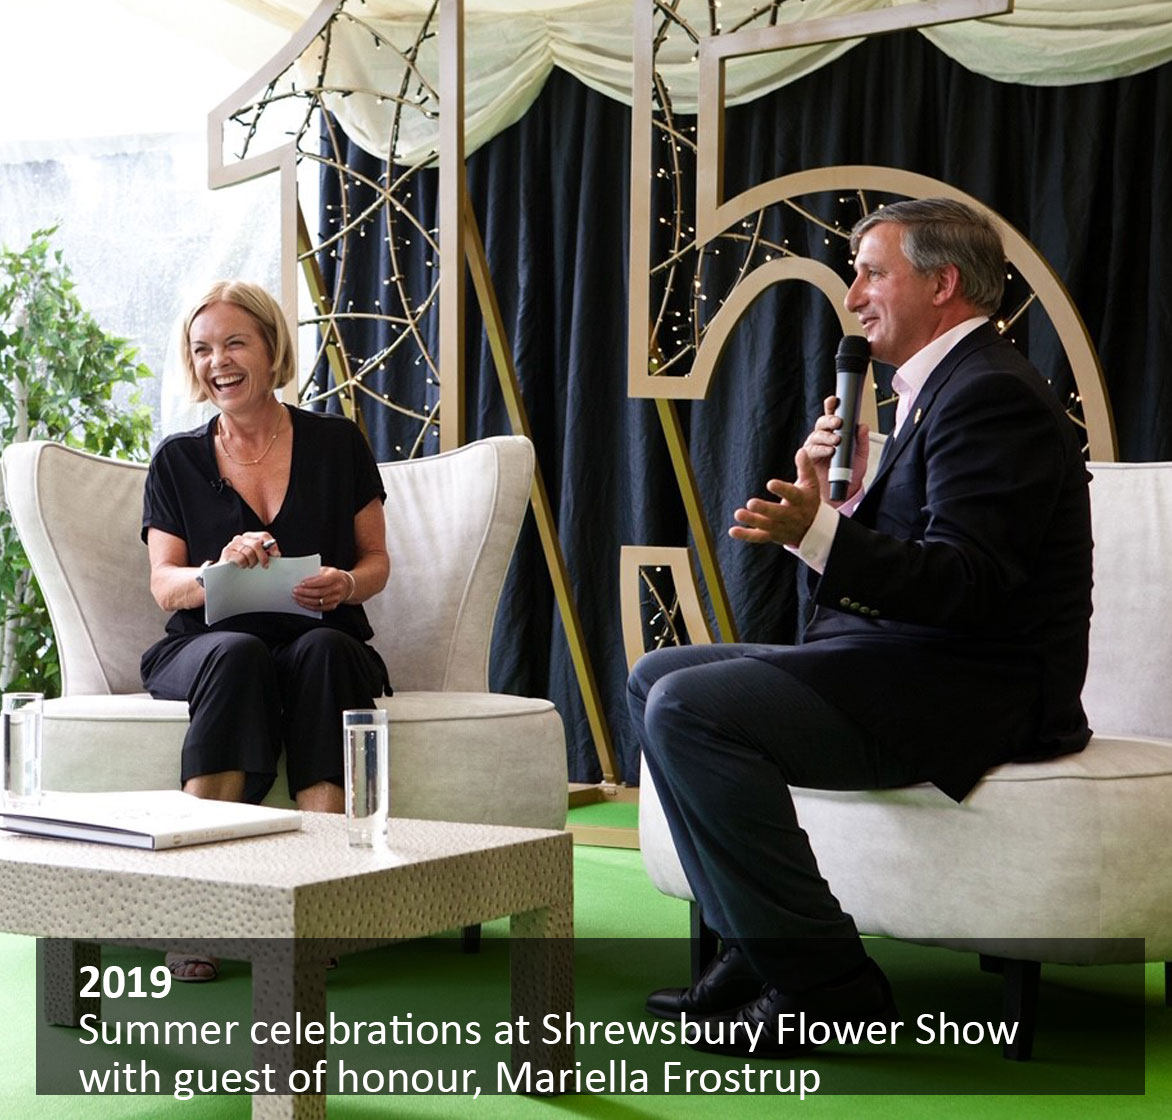 Summer celebrations at Shrewsbury Flower Show with guest of honour, Mariella Frostrup